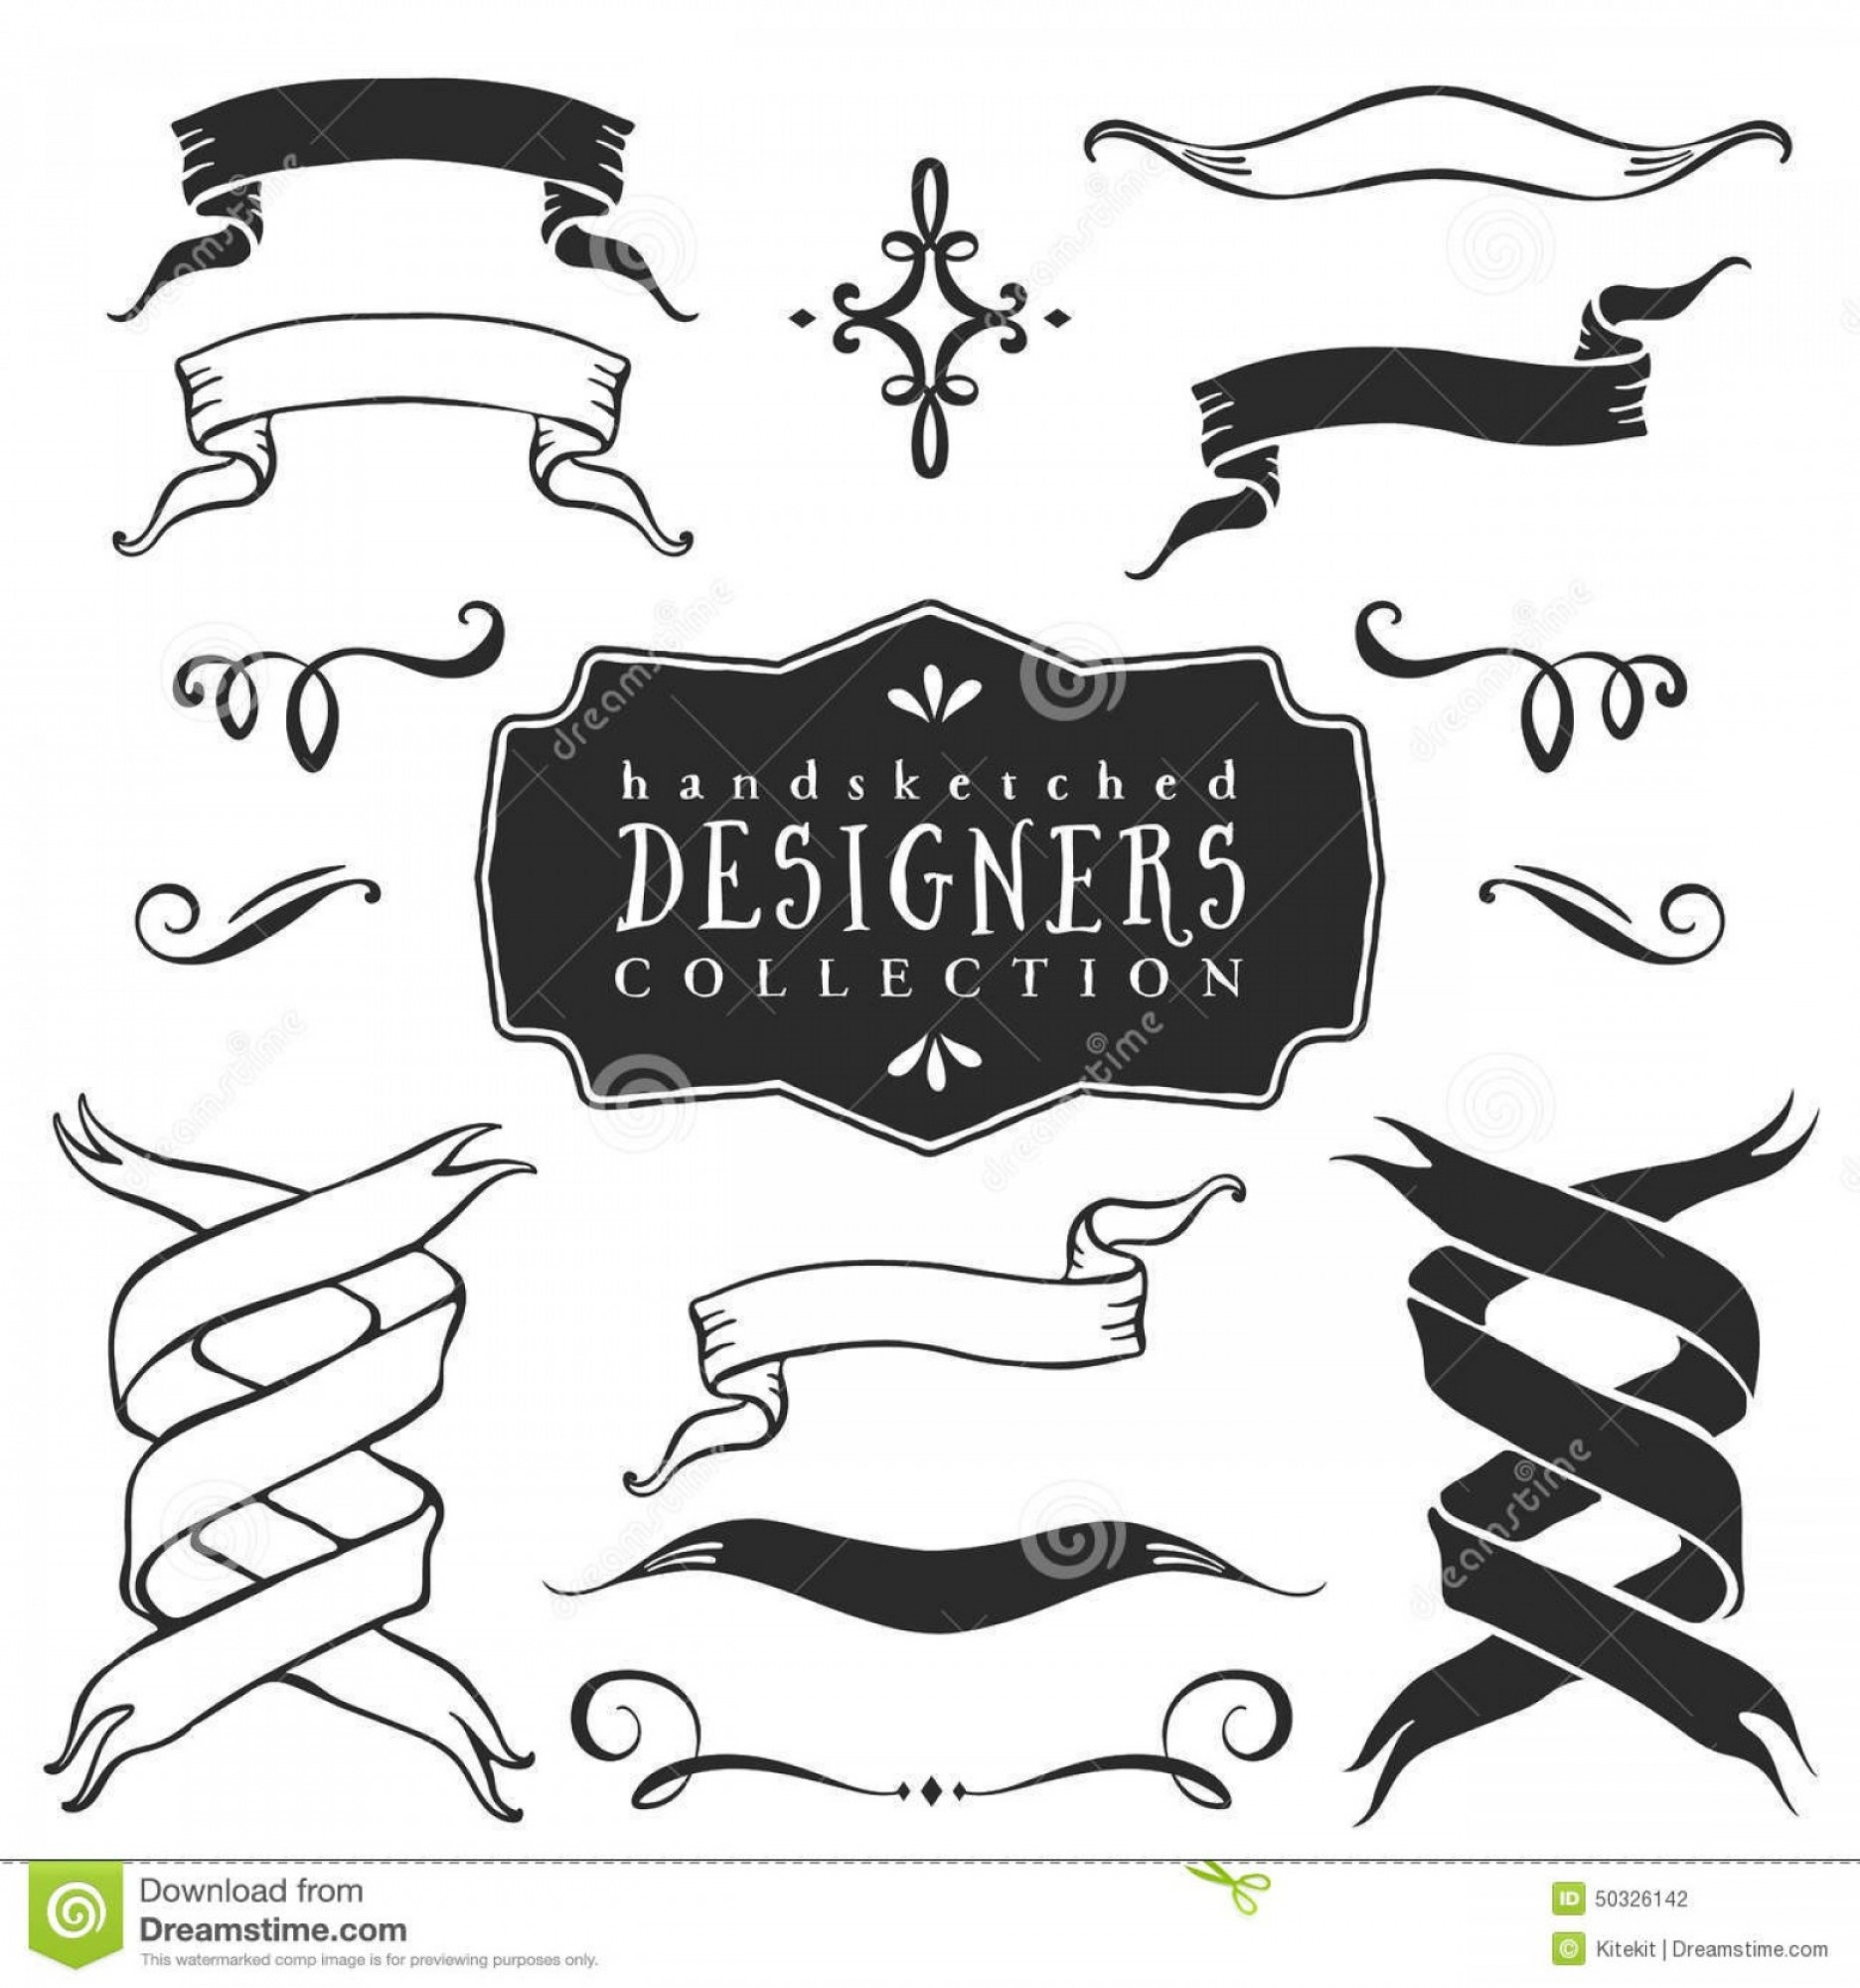 Ribbion Banner Vector: Stock Illustration Vintage Decorative Ribbon Banners Collection Hand Drawn Vector Design Elements Image